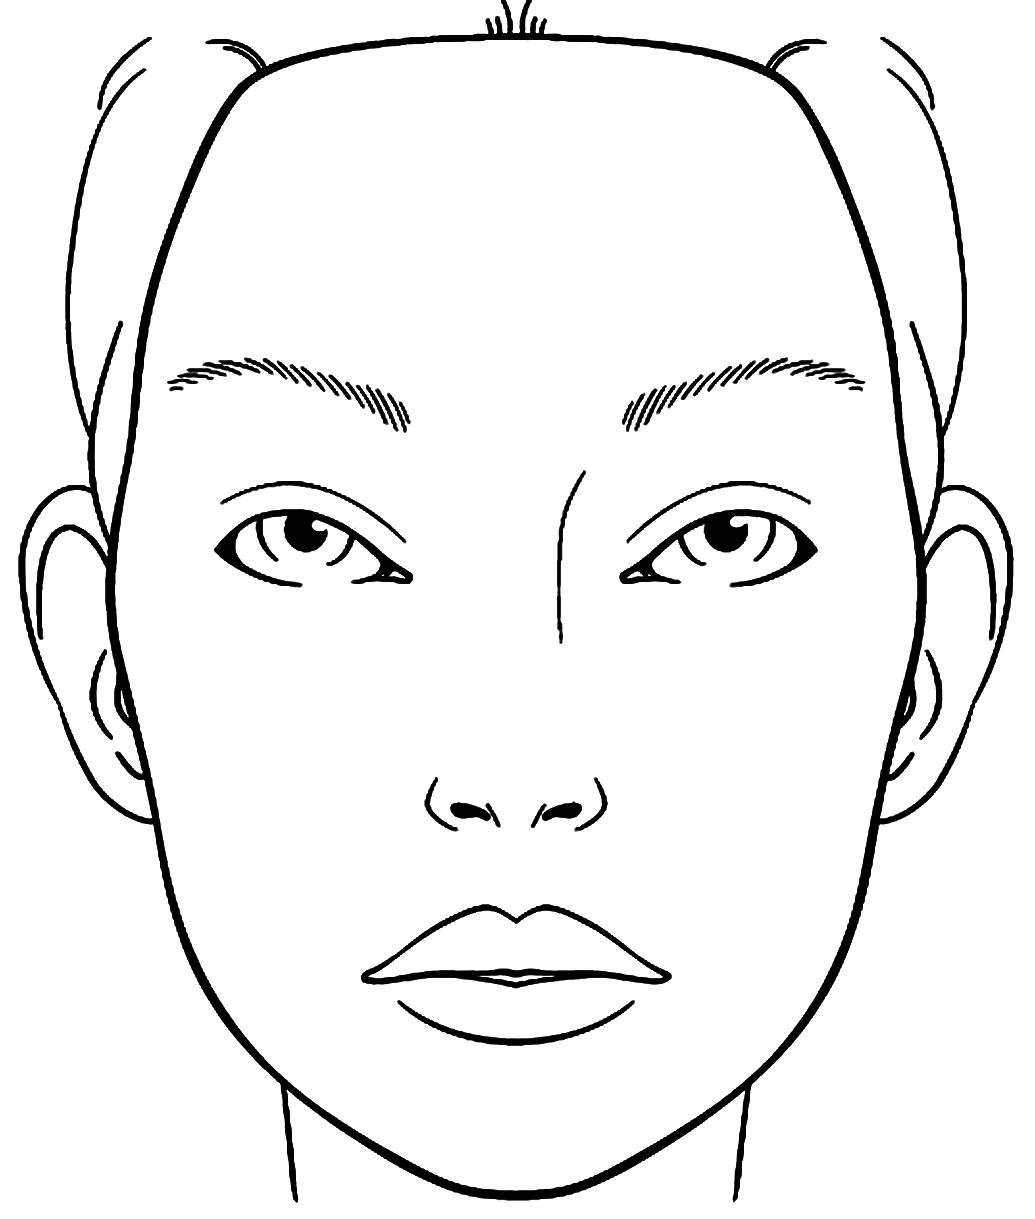 1035x1219 Makeup Face Coloring Pages Printable Coloring For Kids